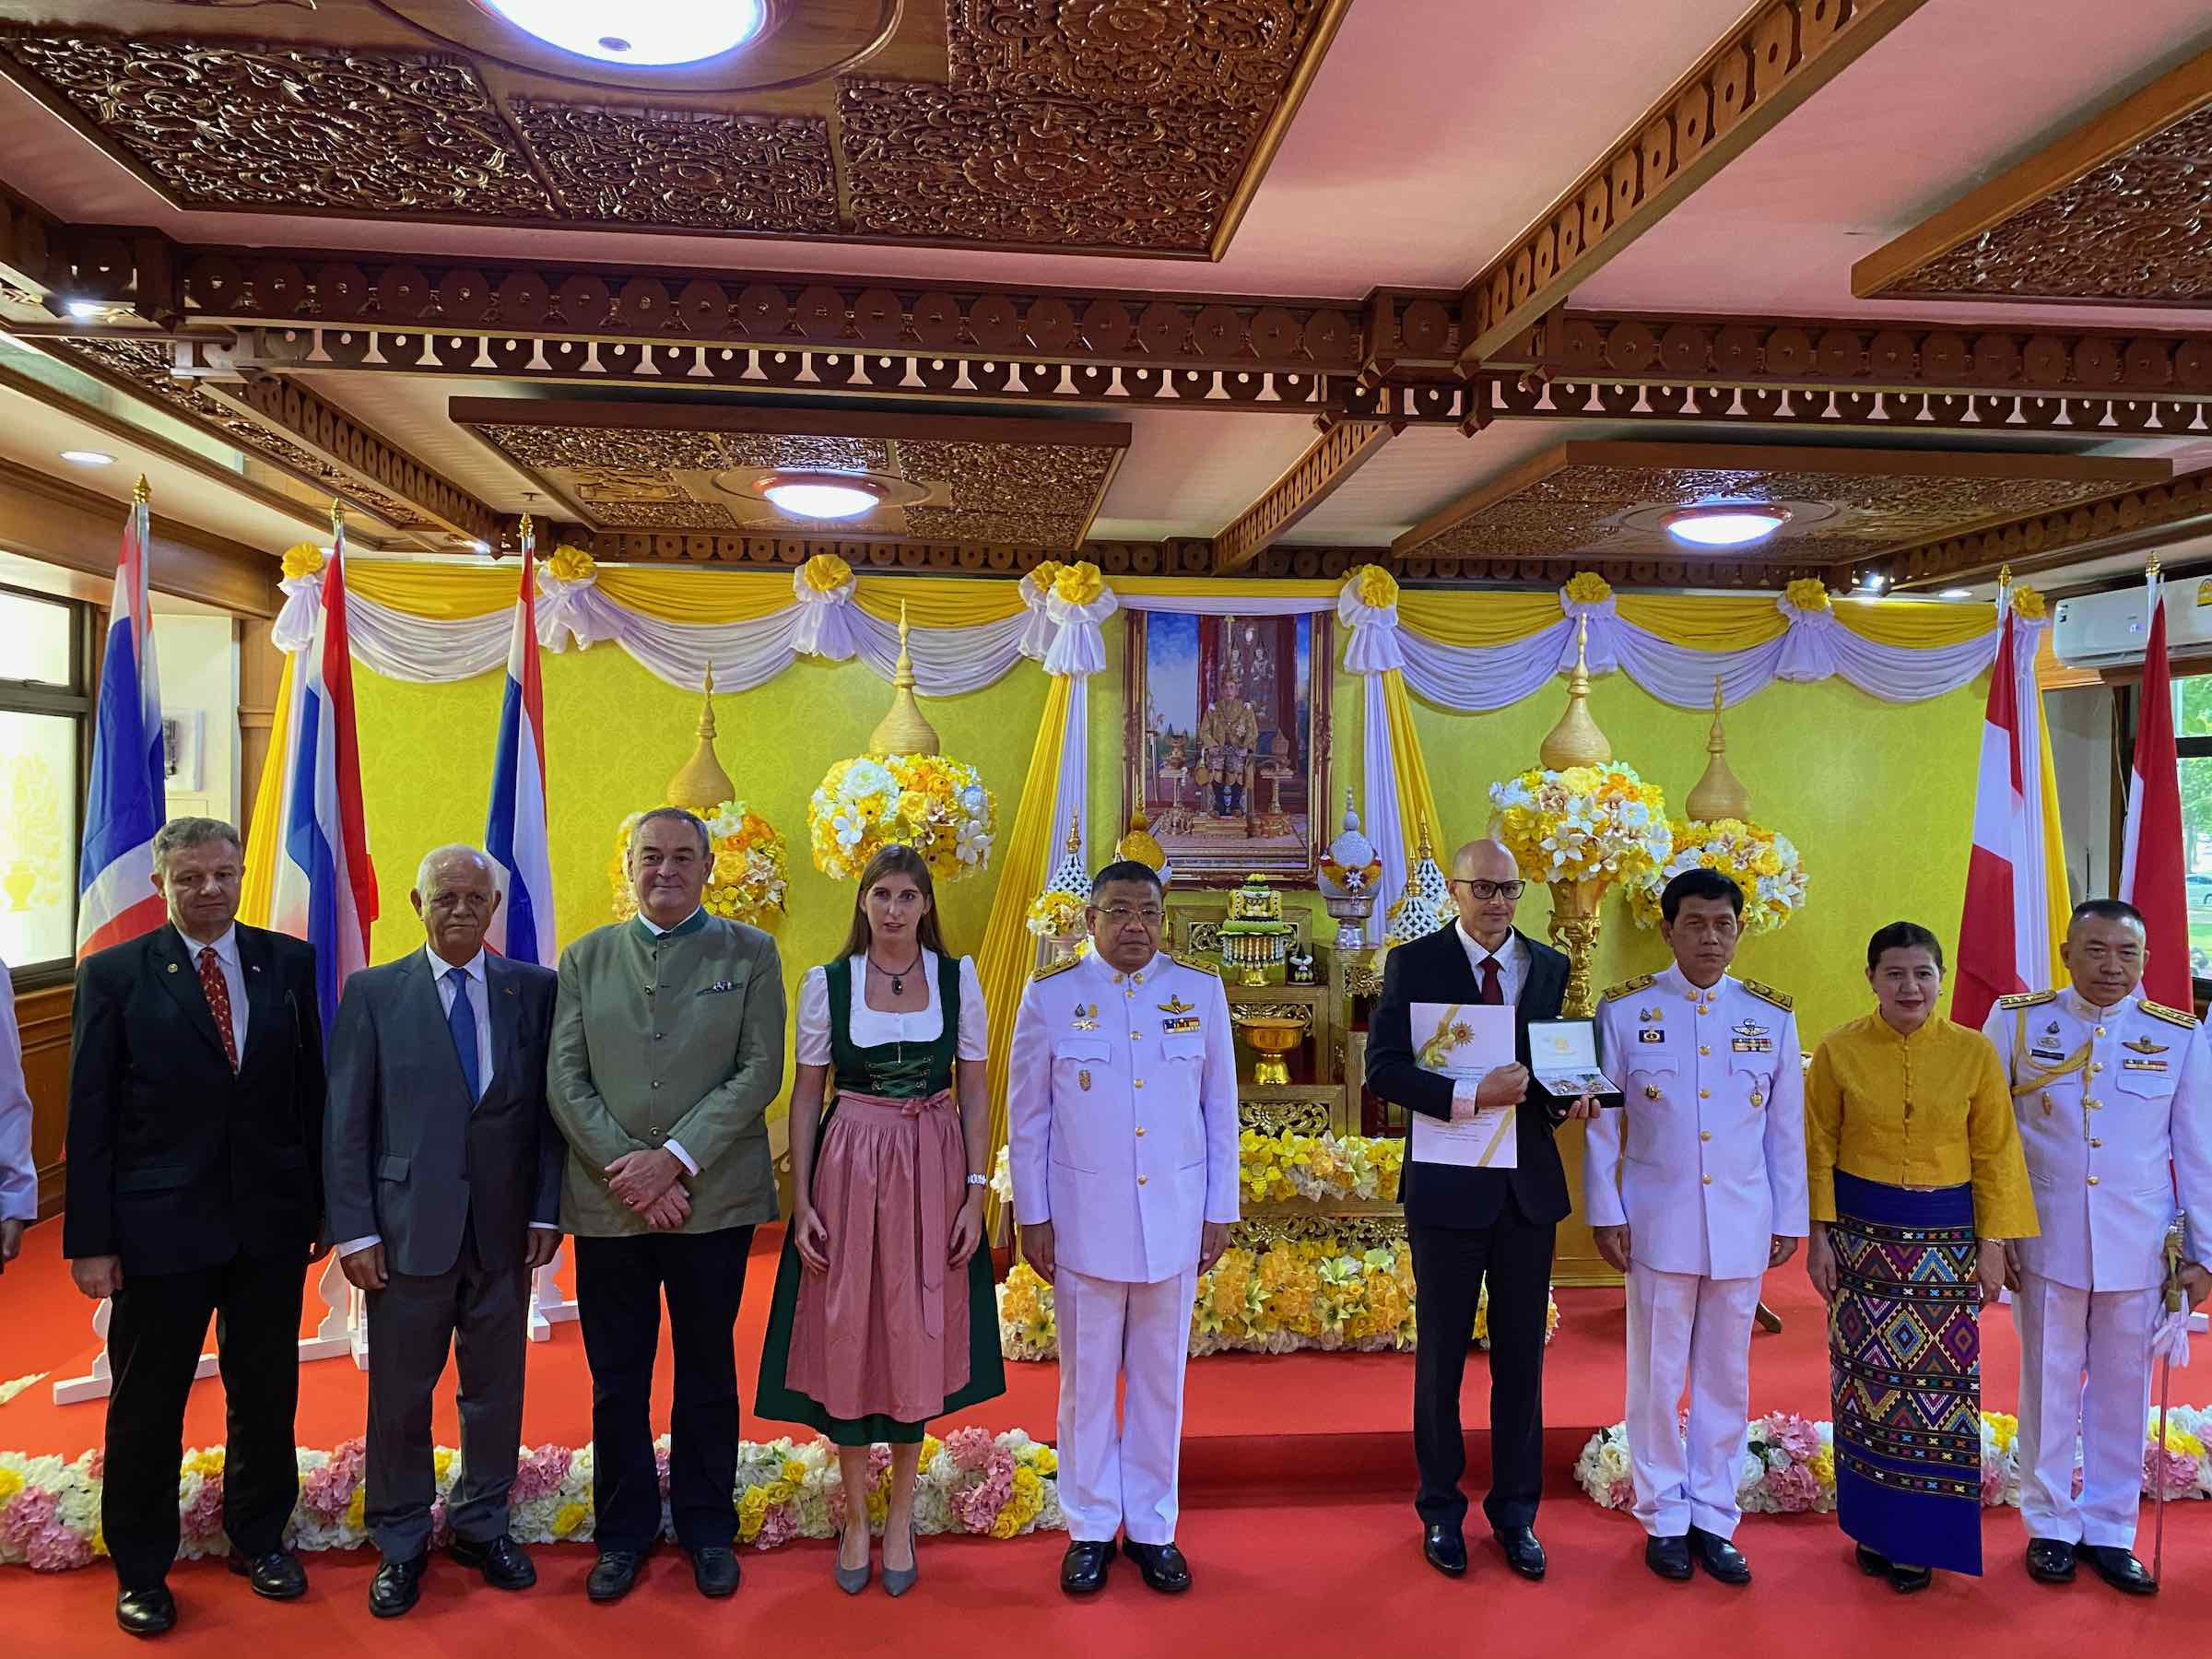 CMRCA team member Mario Wild receives royal decoration from the Thai government presented by the Governor of Chiang Mai for his effort during the Tham Luang Thai Cave Rescue